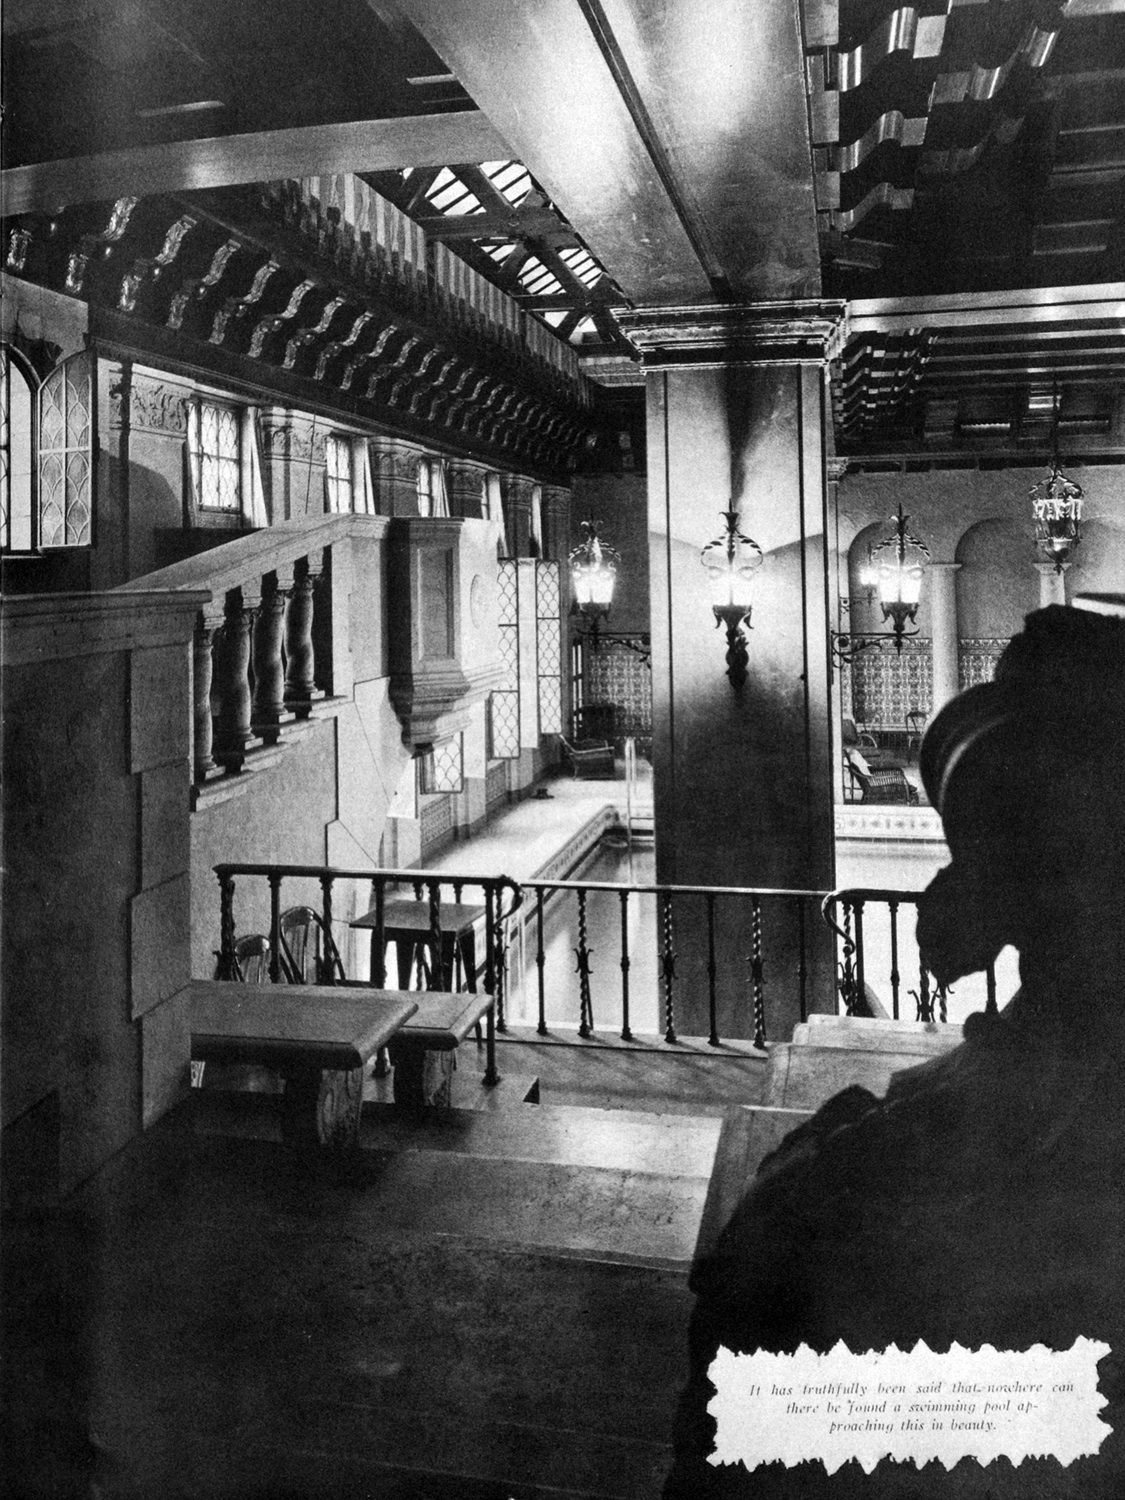 The 1929 men's swimming pool on the thirteenth floor at the Medinah Athletic Club in Chicago with its lounge, grotto, and spectator seating (Scimitar)